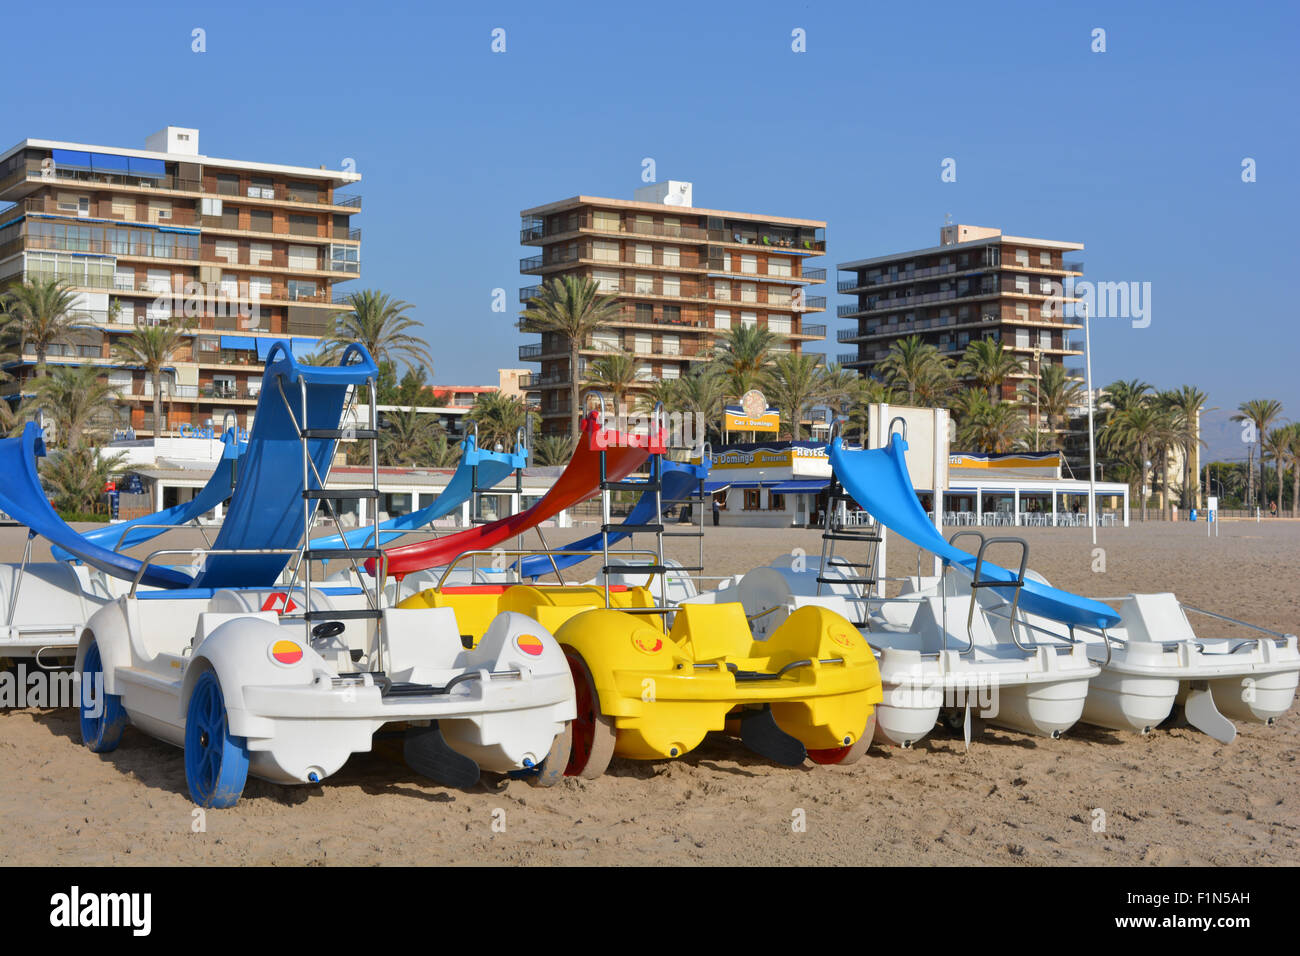 Apartments on the front and pedal boats for hire on the beach, San Juan Playa, Spain Stock Photo